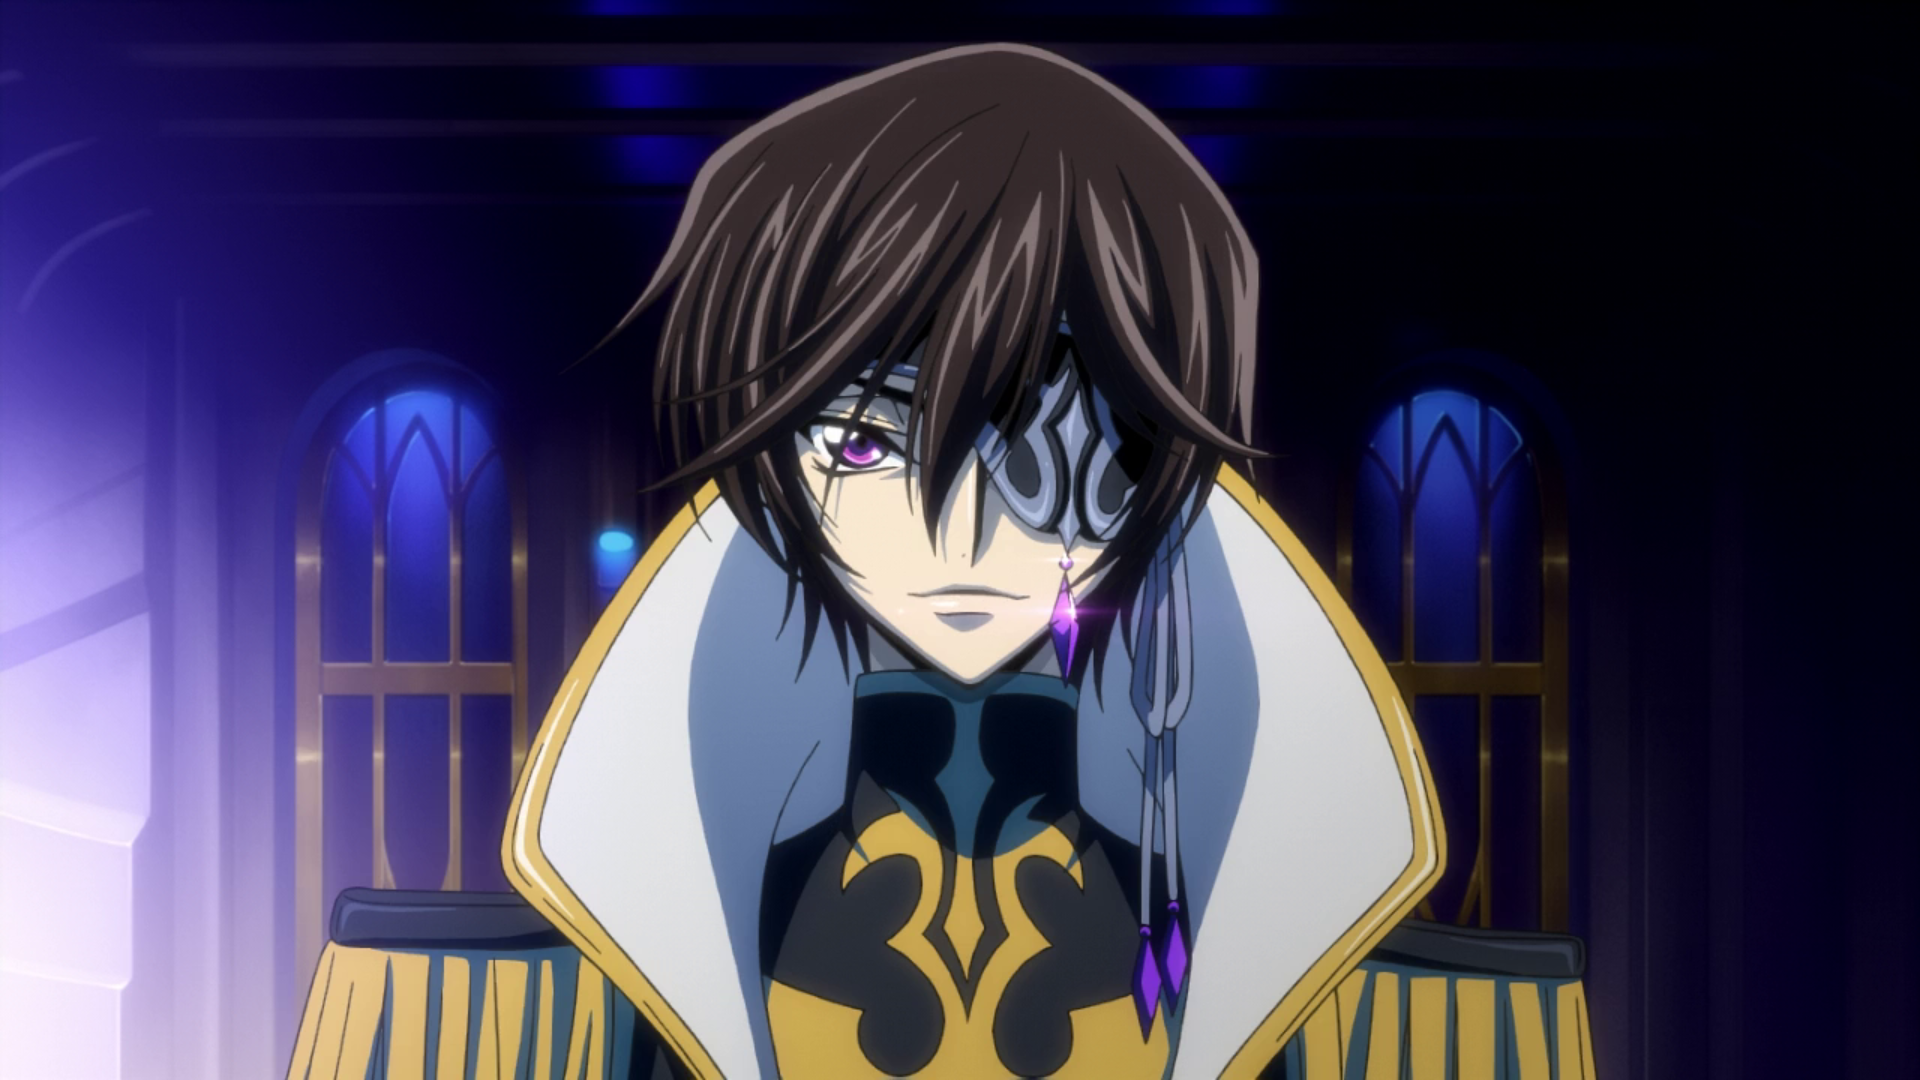 Julius Kingsley | Code Geass Wiki | FANDOM powered by Wikia